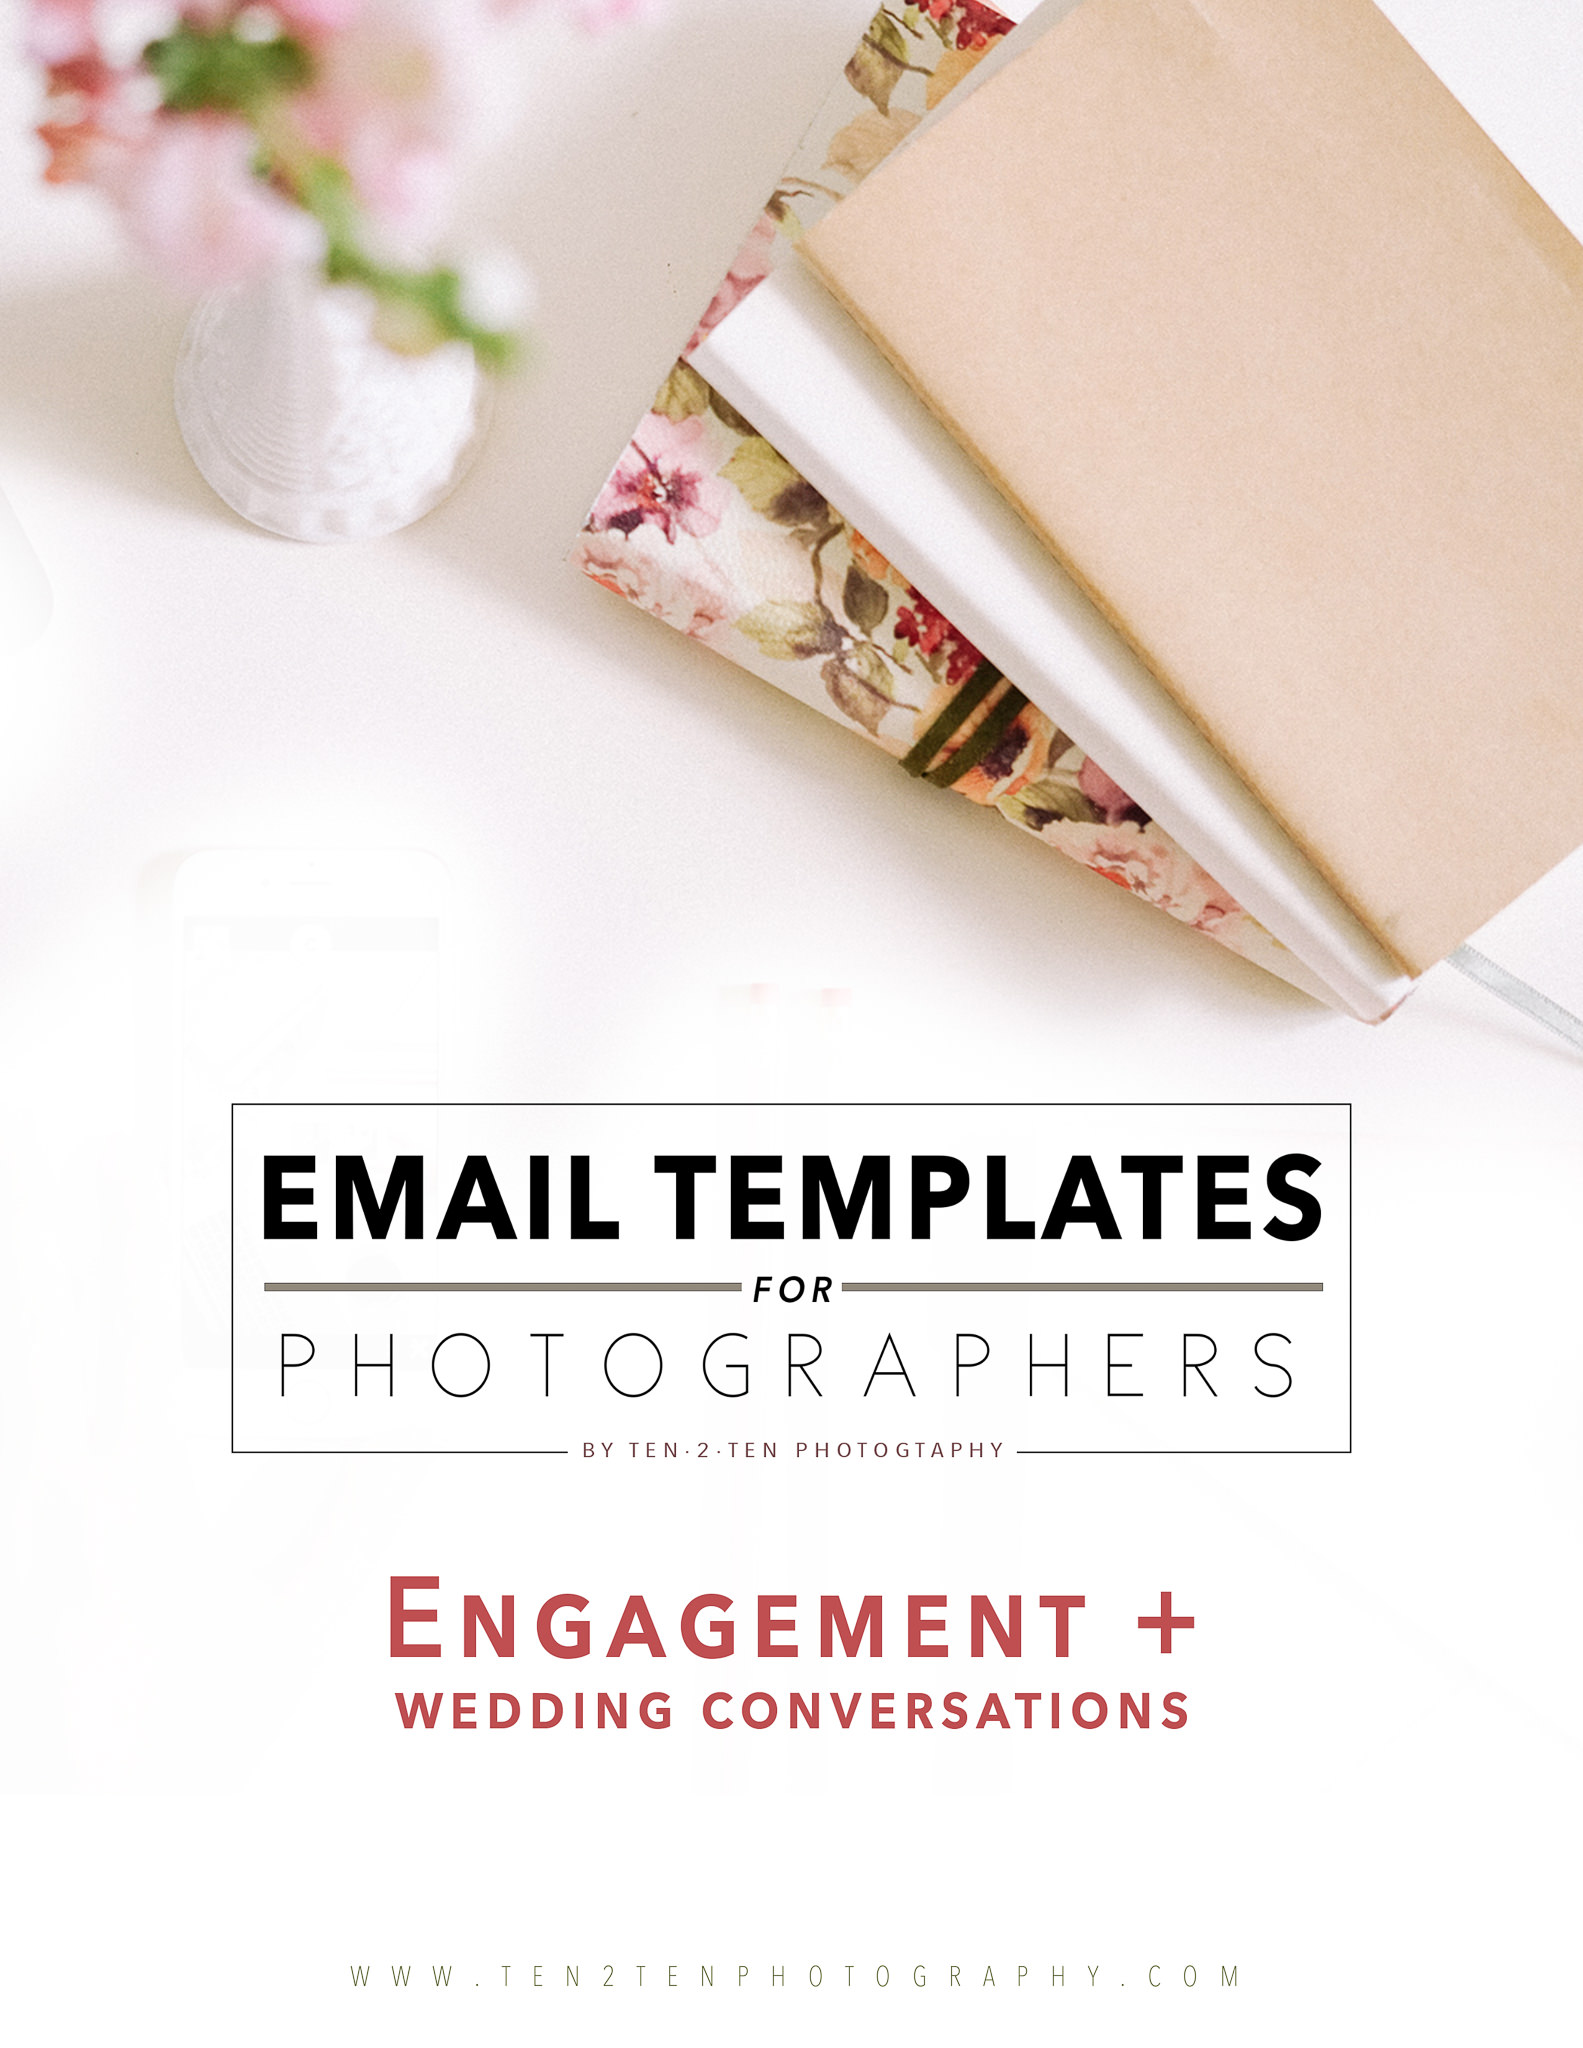 email templates for photographers 6 - Shop